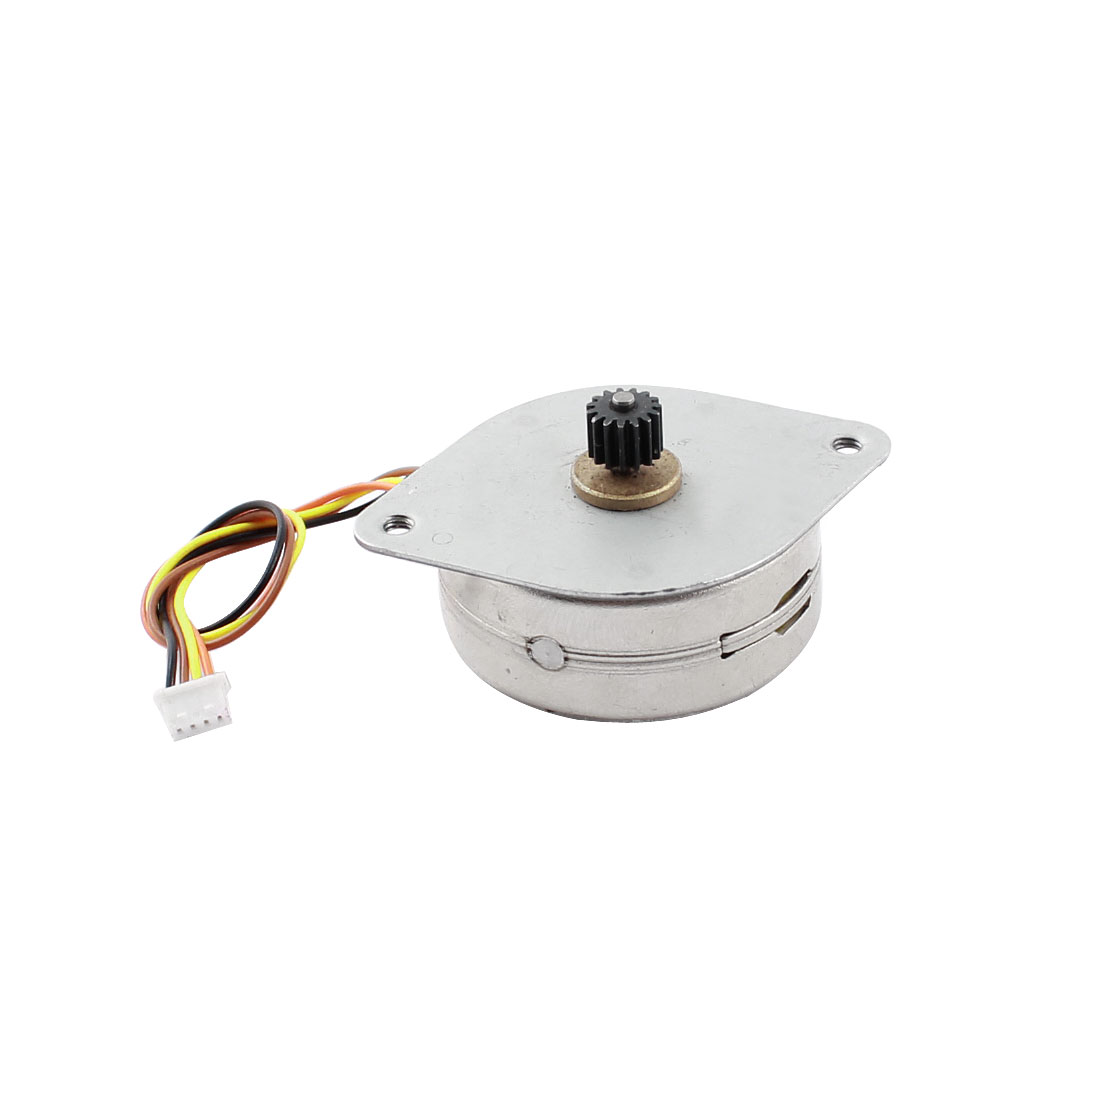 DC 3.5V 0.3mA 35mm Diameter Round Shaped Stepper Stepping Motor Replacement 25000RMP